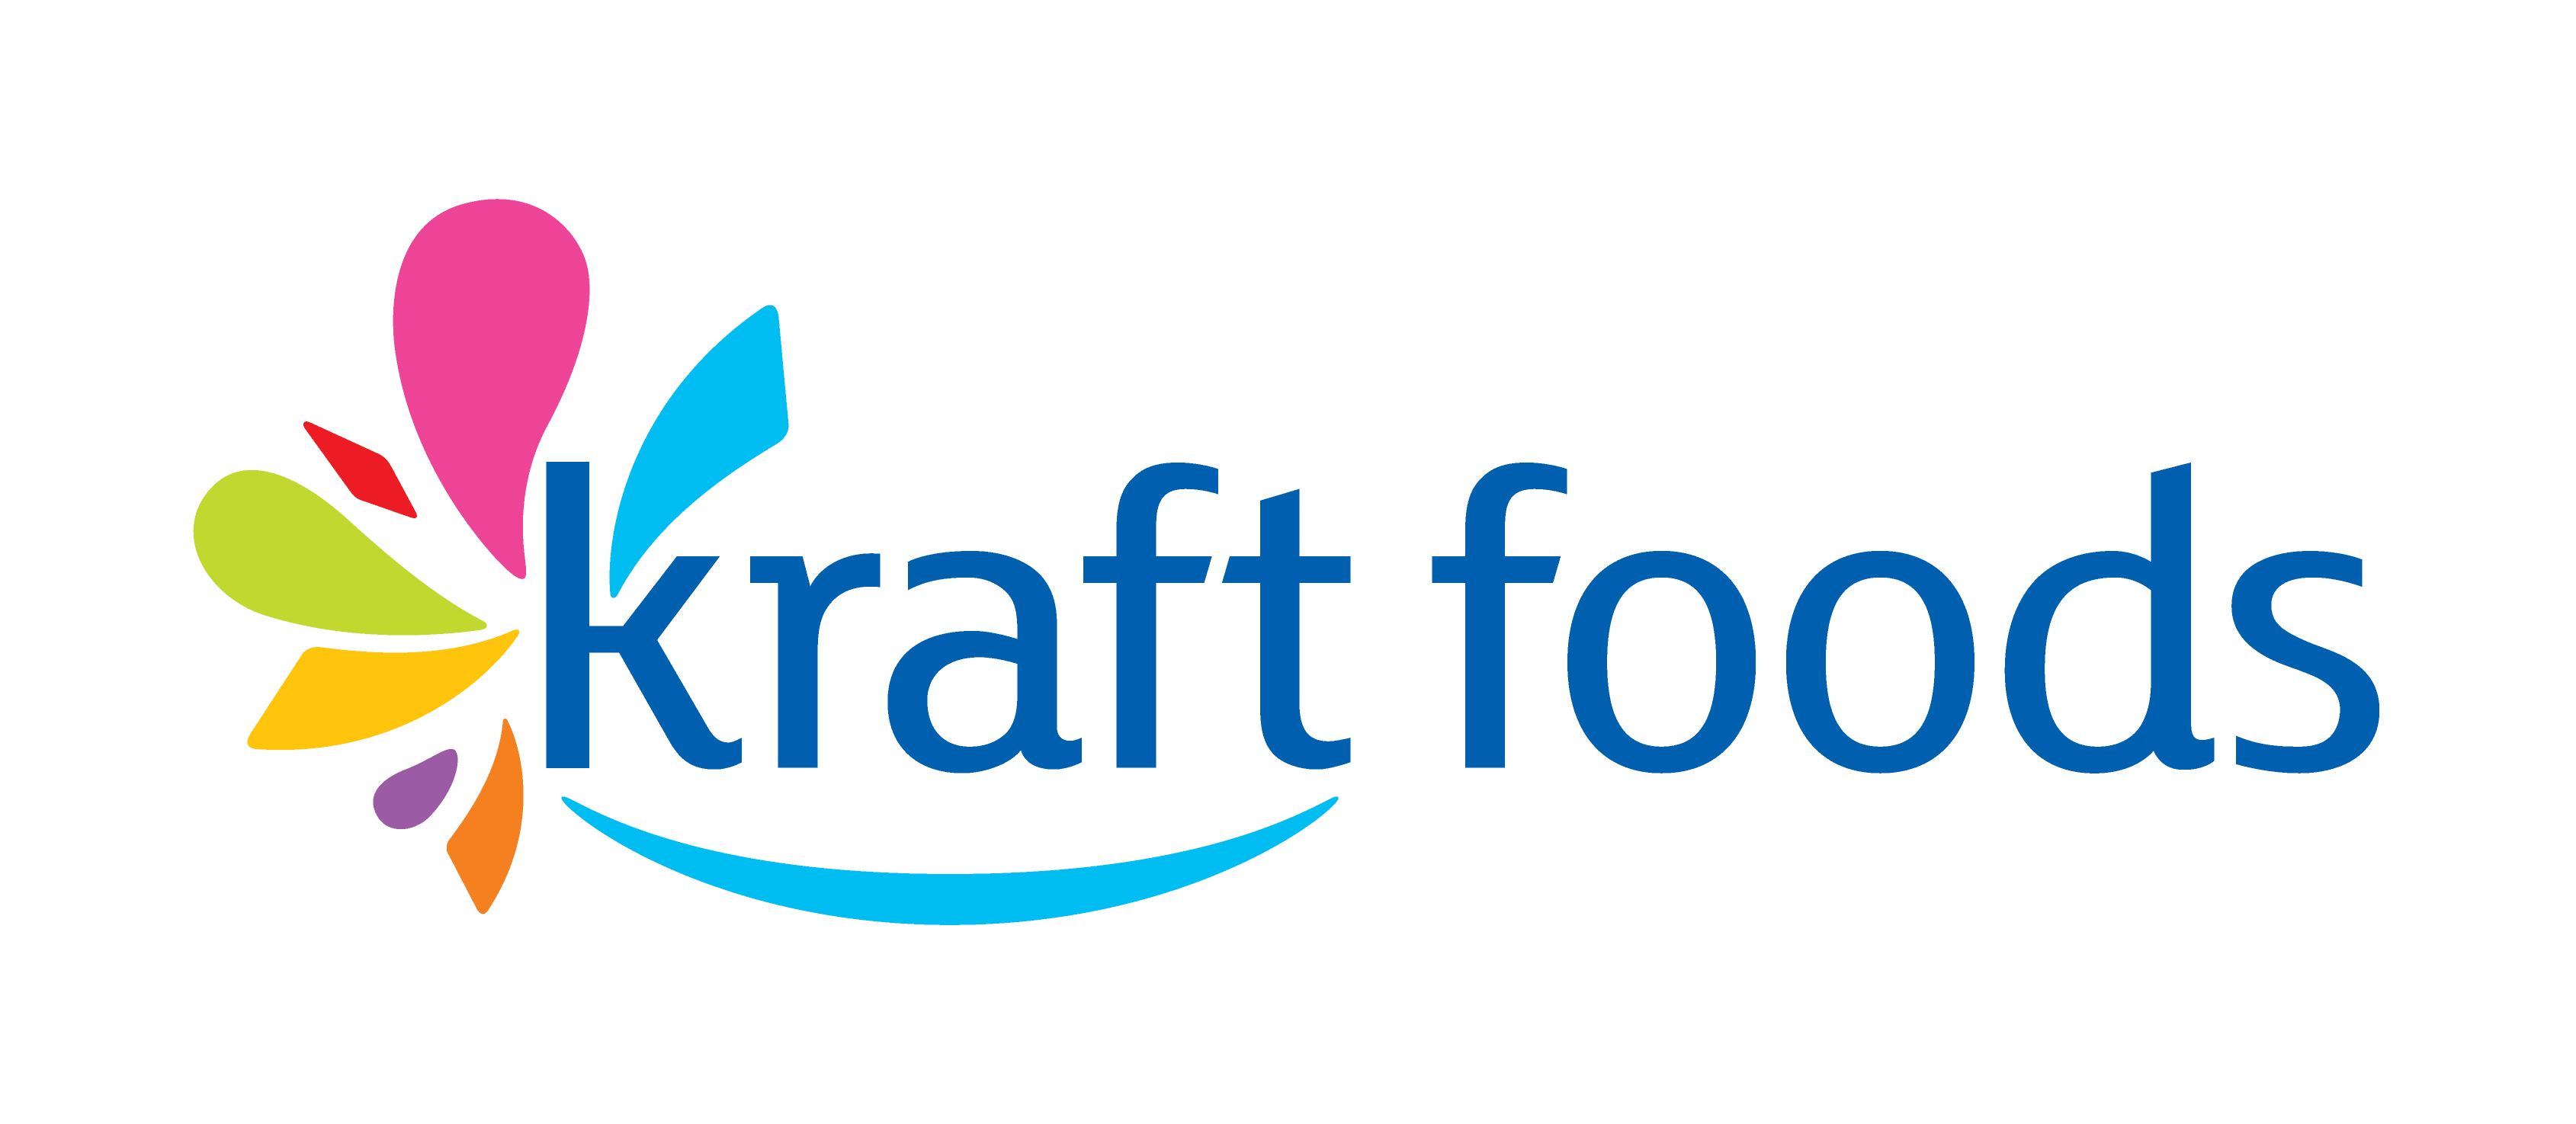 kraft foods 2 essay Kraft foods - essay example kraft foods is a public according to the essay, kraft food company has enforce strict directions to restrict the sale and.